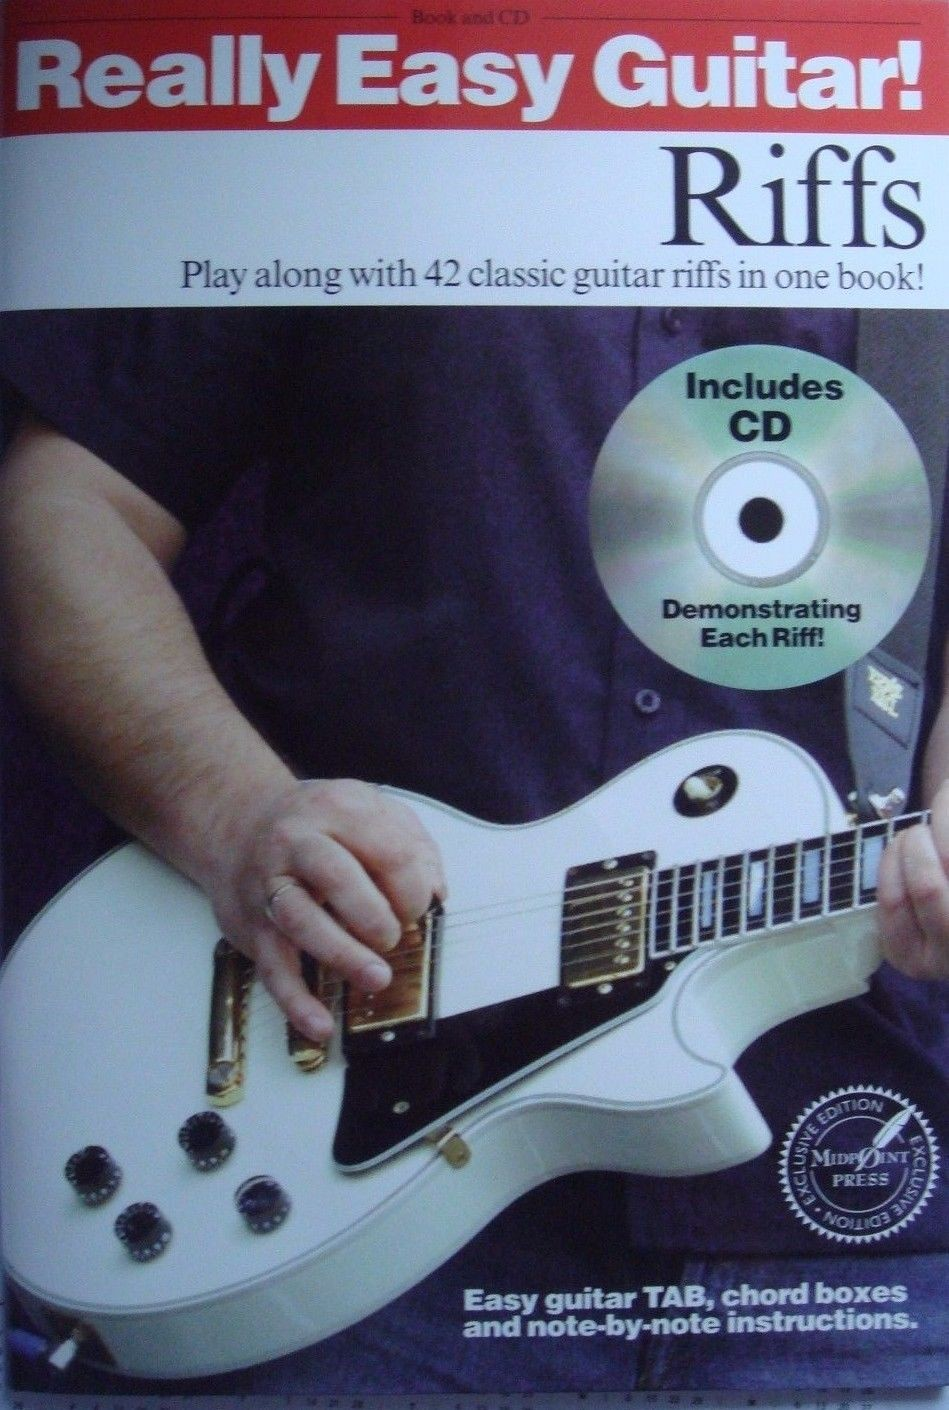 Really Easy Guitar Riffs Book CD Tab Chords Notes Play Along Classic Songs B66